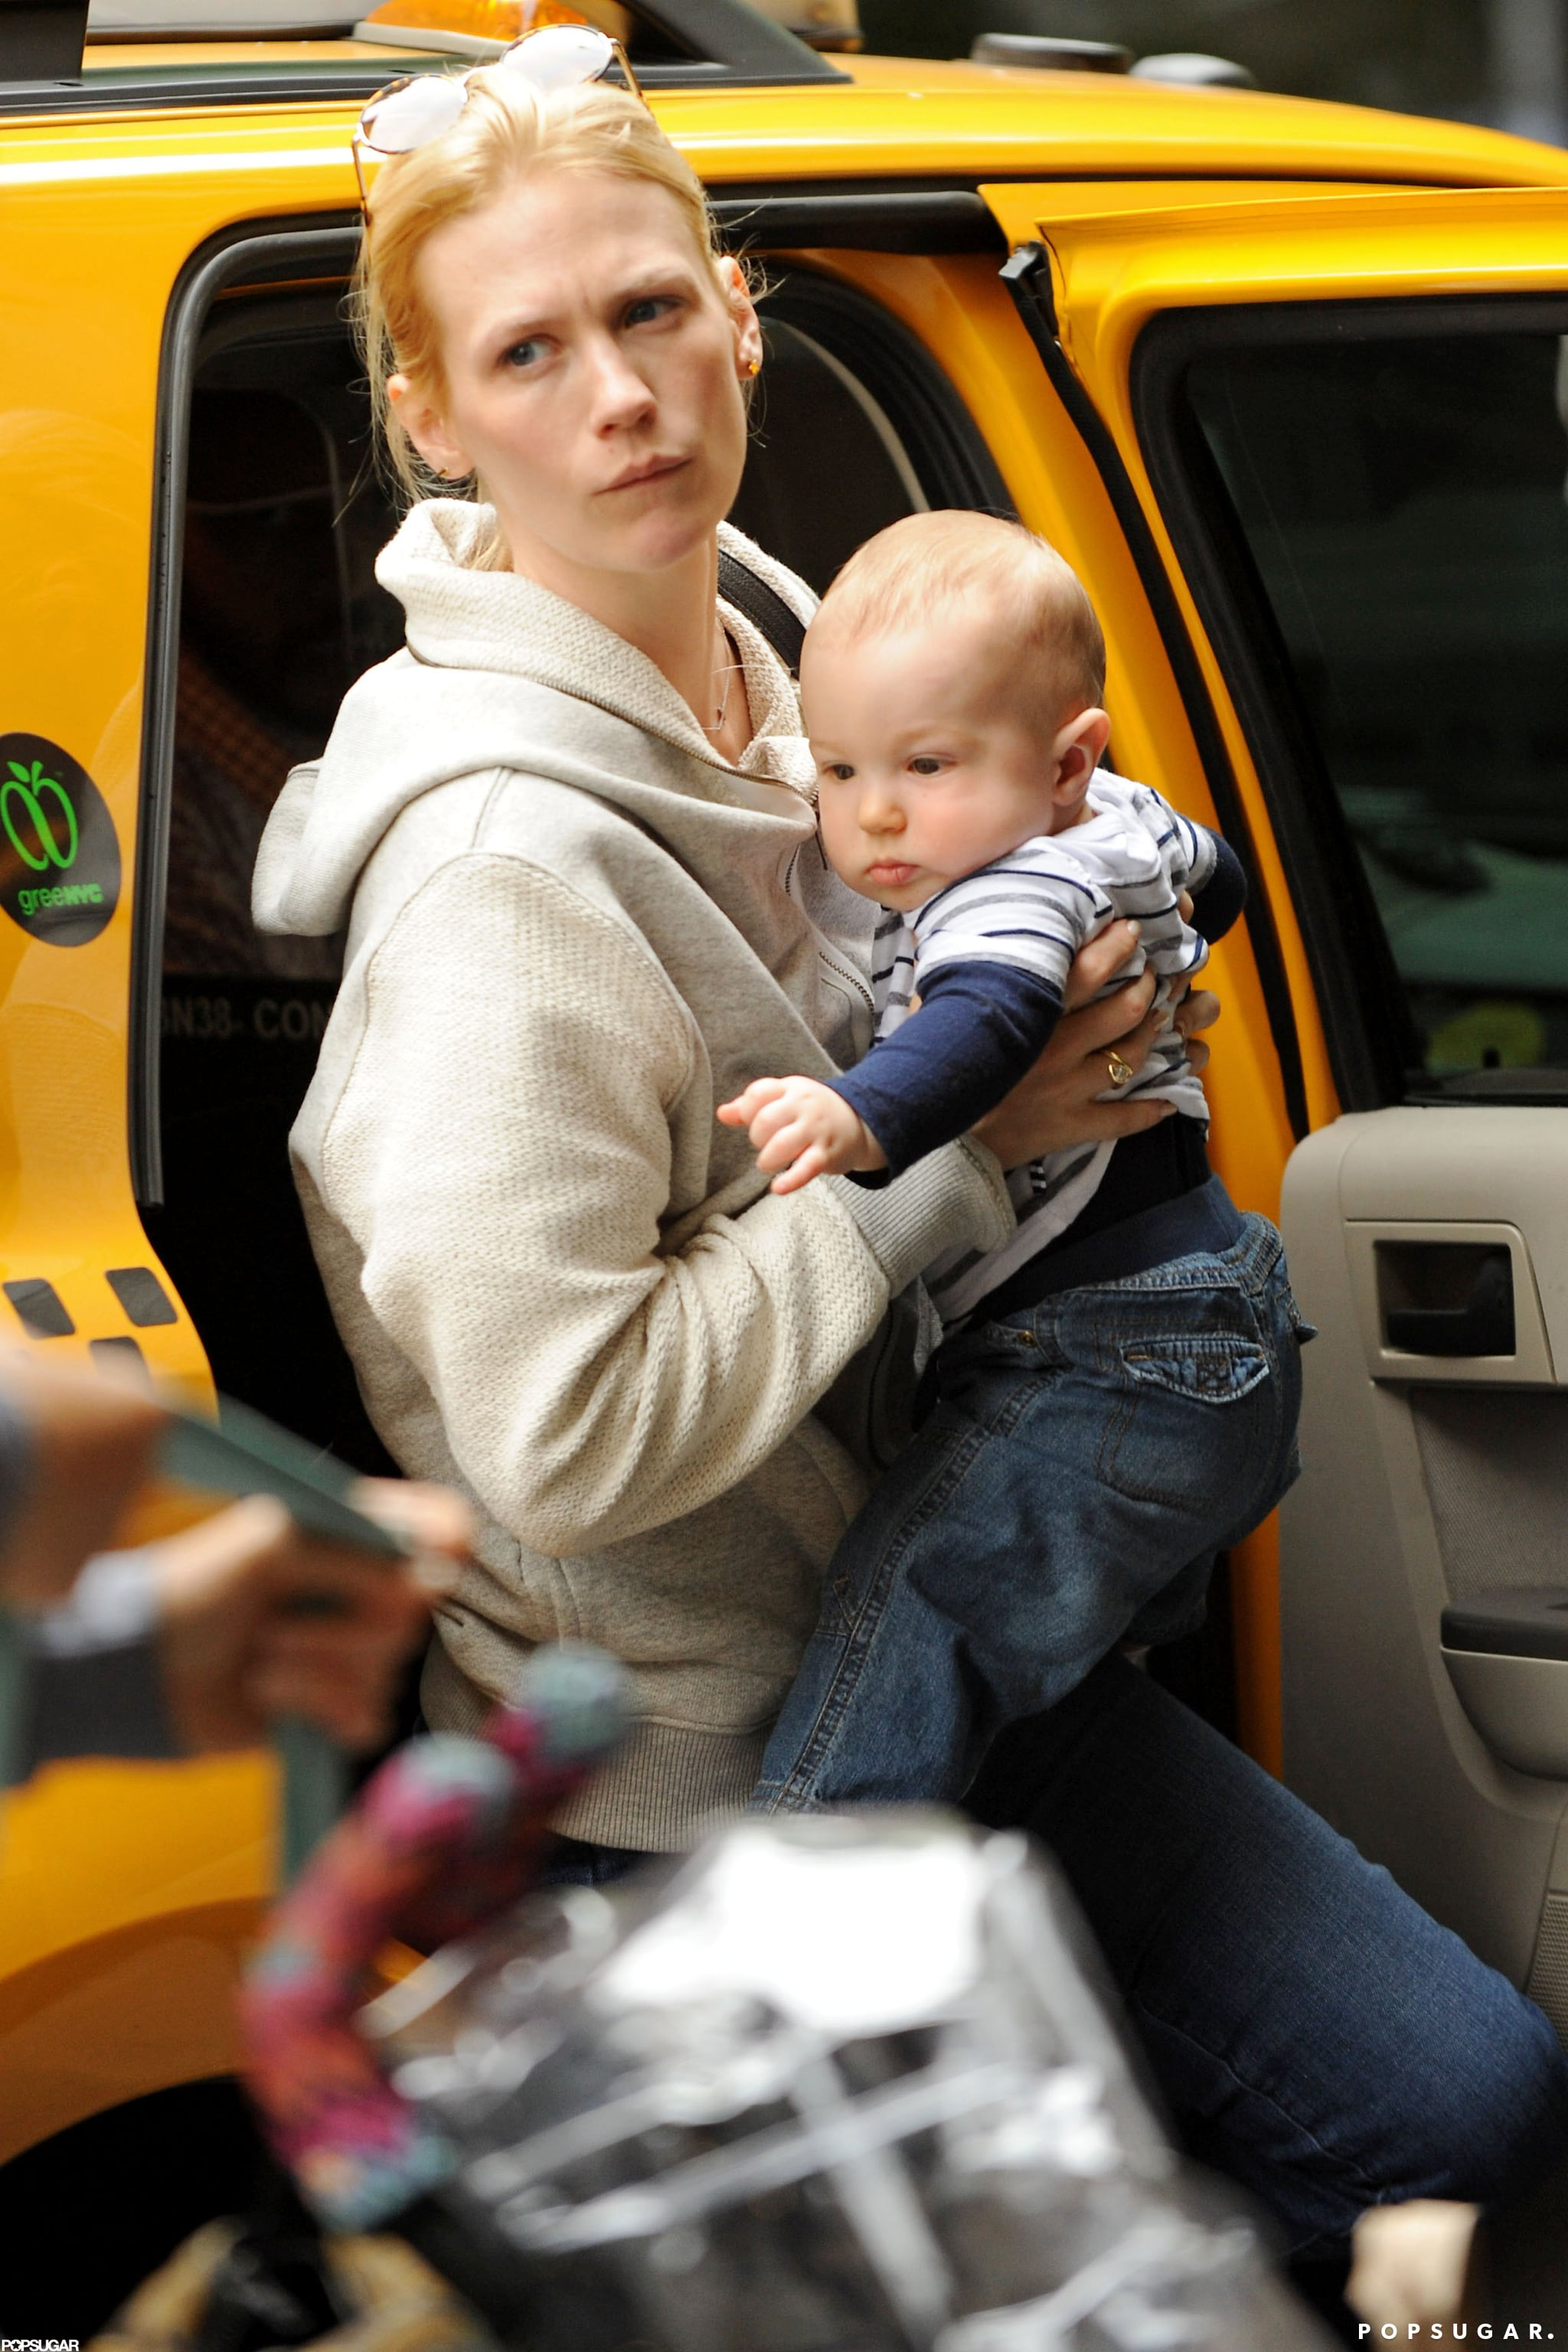 January Jones dressed baby Xander in a tiny pair of jeans and a striped shirt while out in NYC.